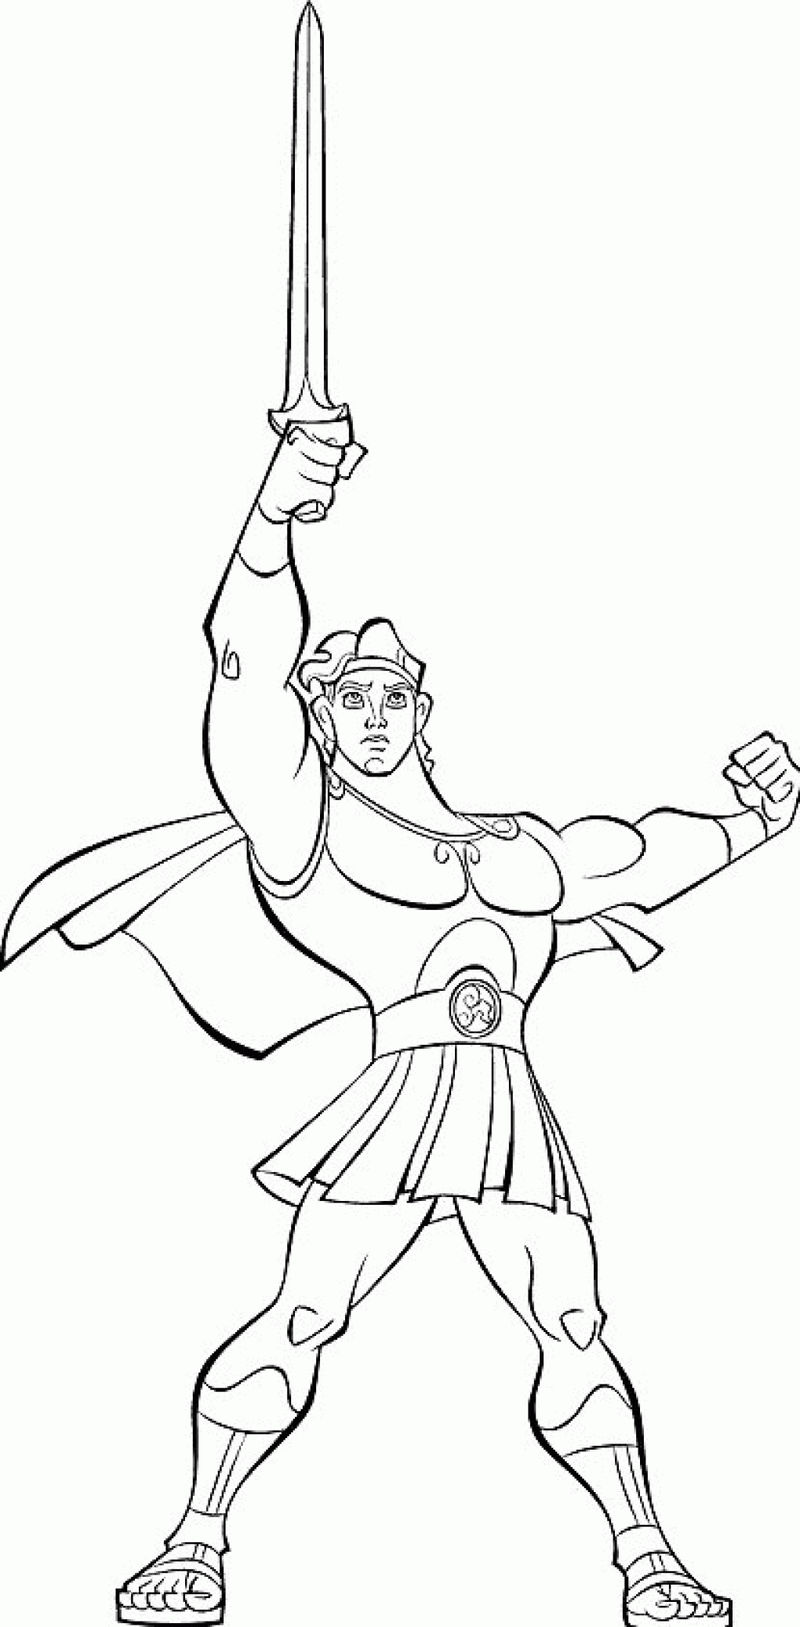 Hercules Coloring Pages For Kids